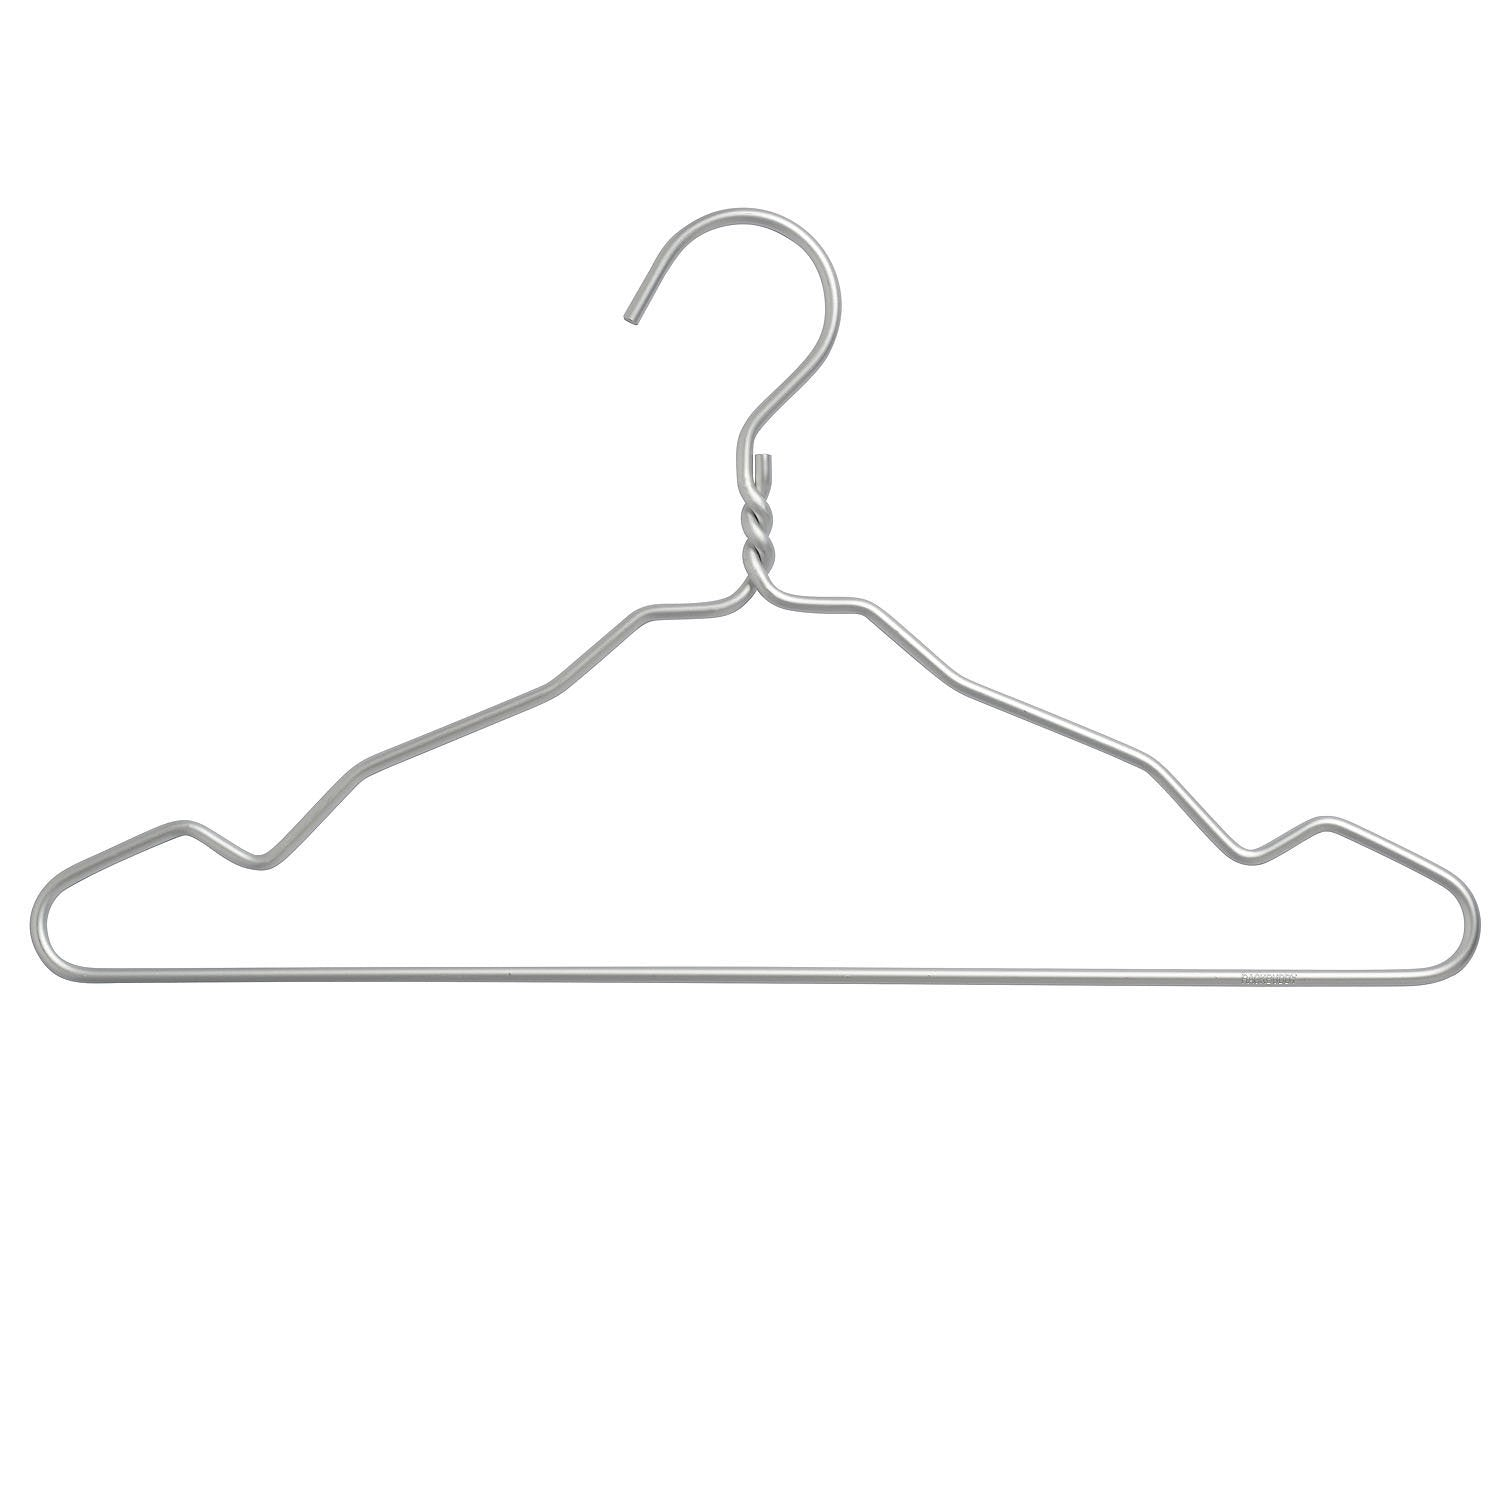 Clothes hangers in silver